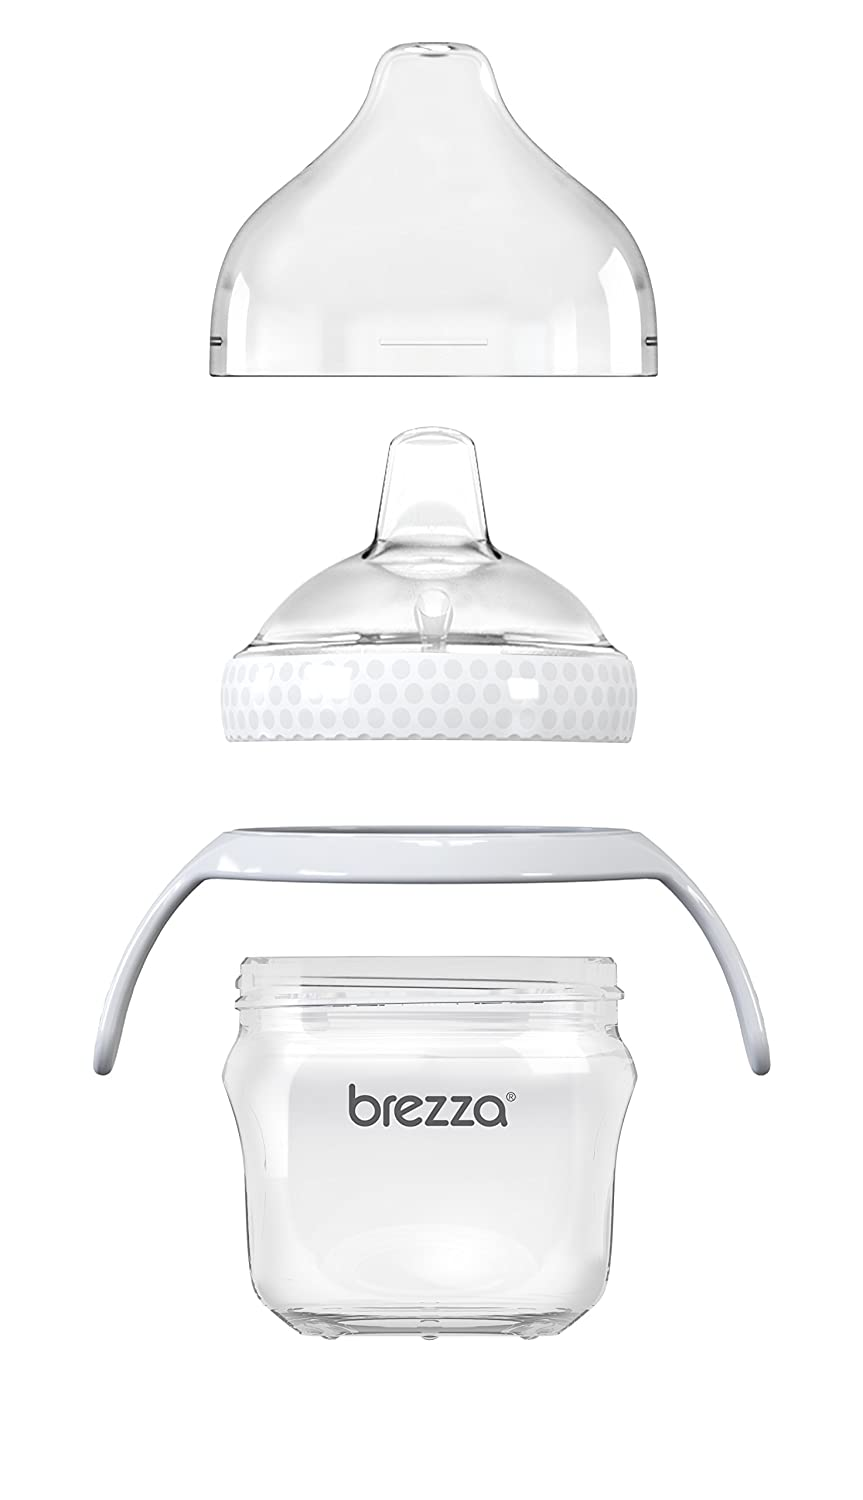 Wide Mouth for Easy Cleaning 5 Ounce White Soft Silicone Spout Baby Brezza Transition Sippy Cup with Handles Great Transitional Cup for Infants and Toddlers BPA Free Leak /& Spill Proof